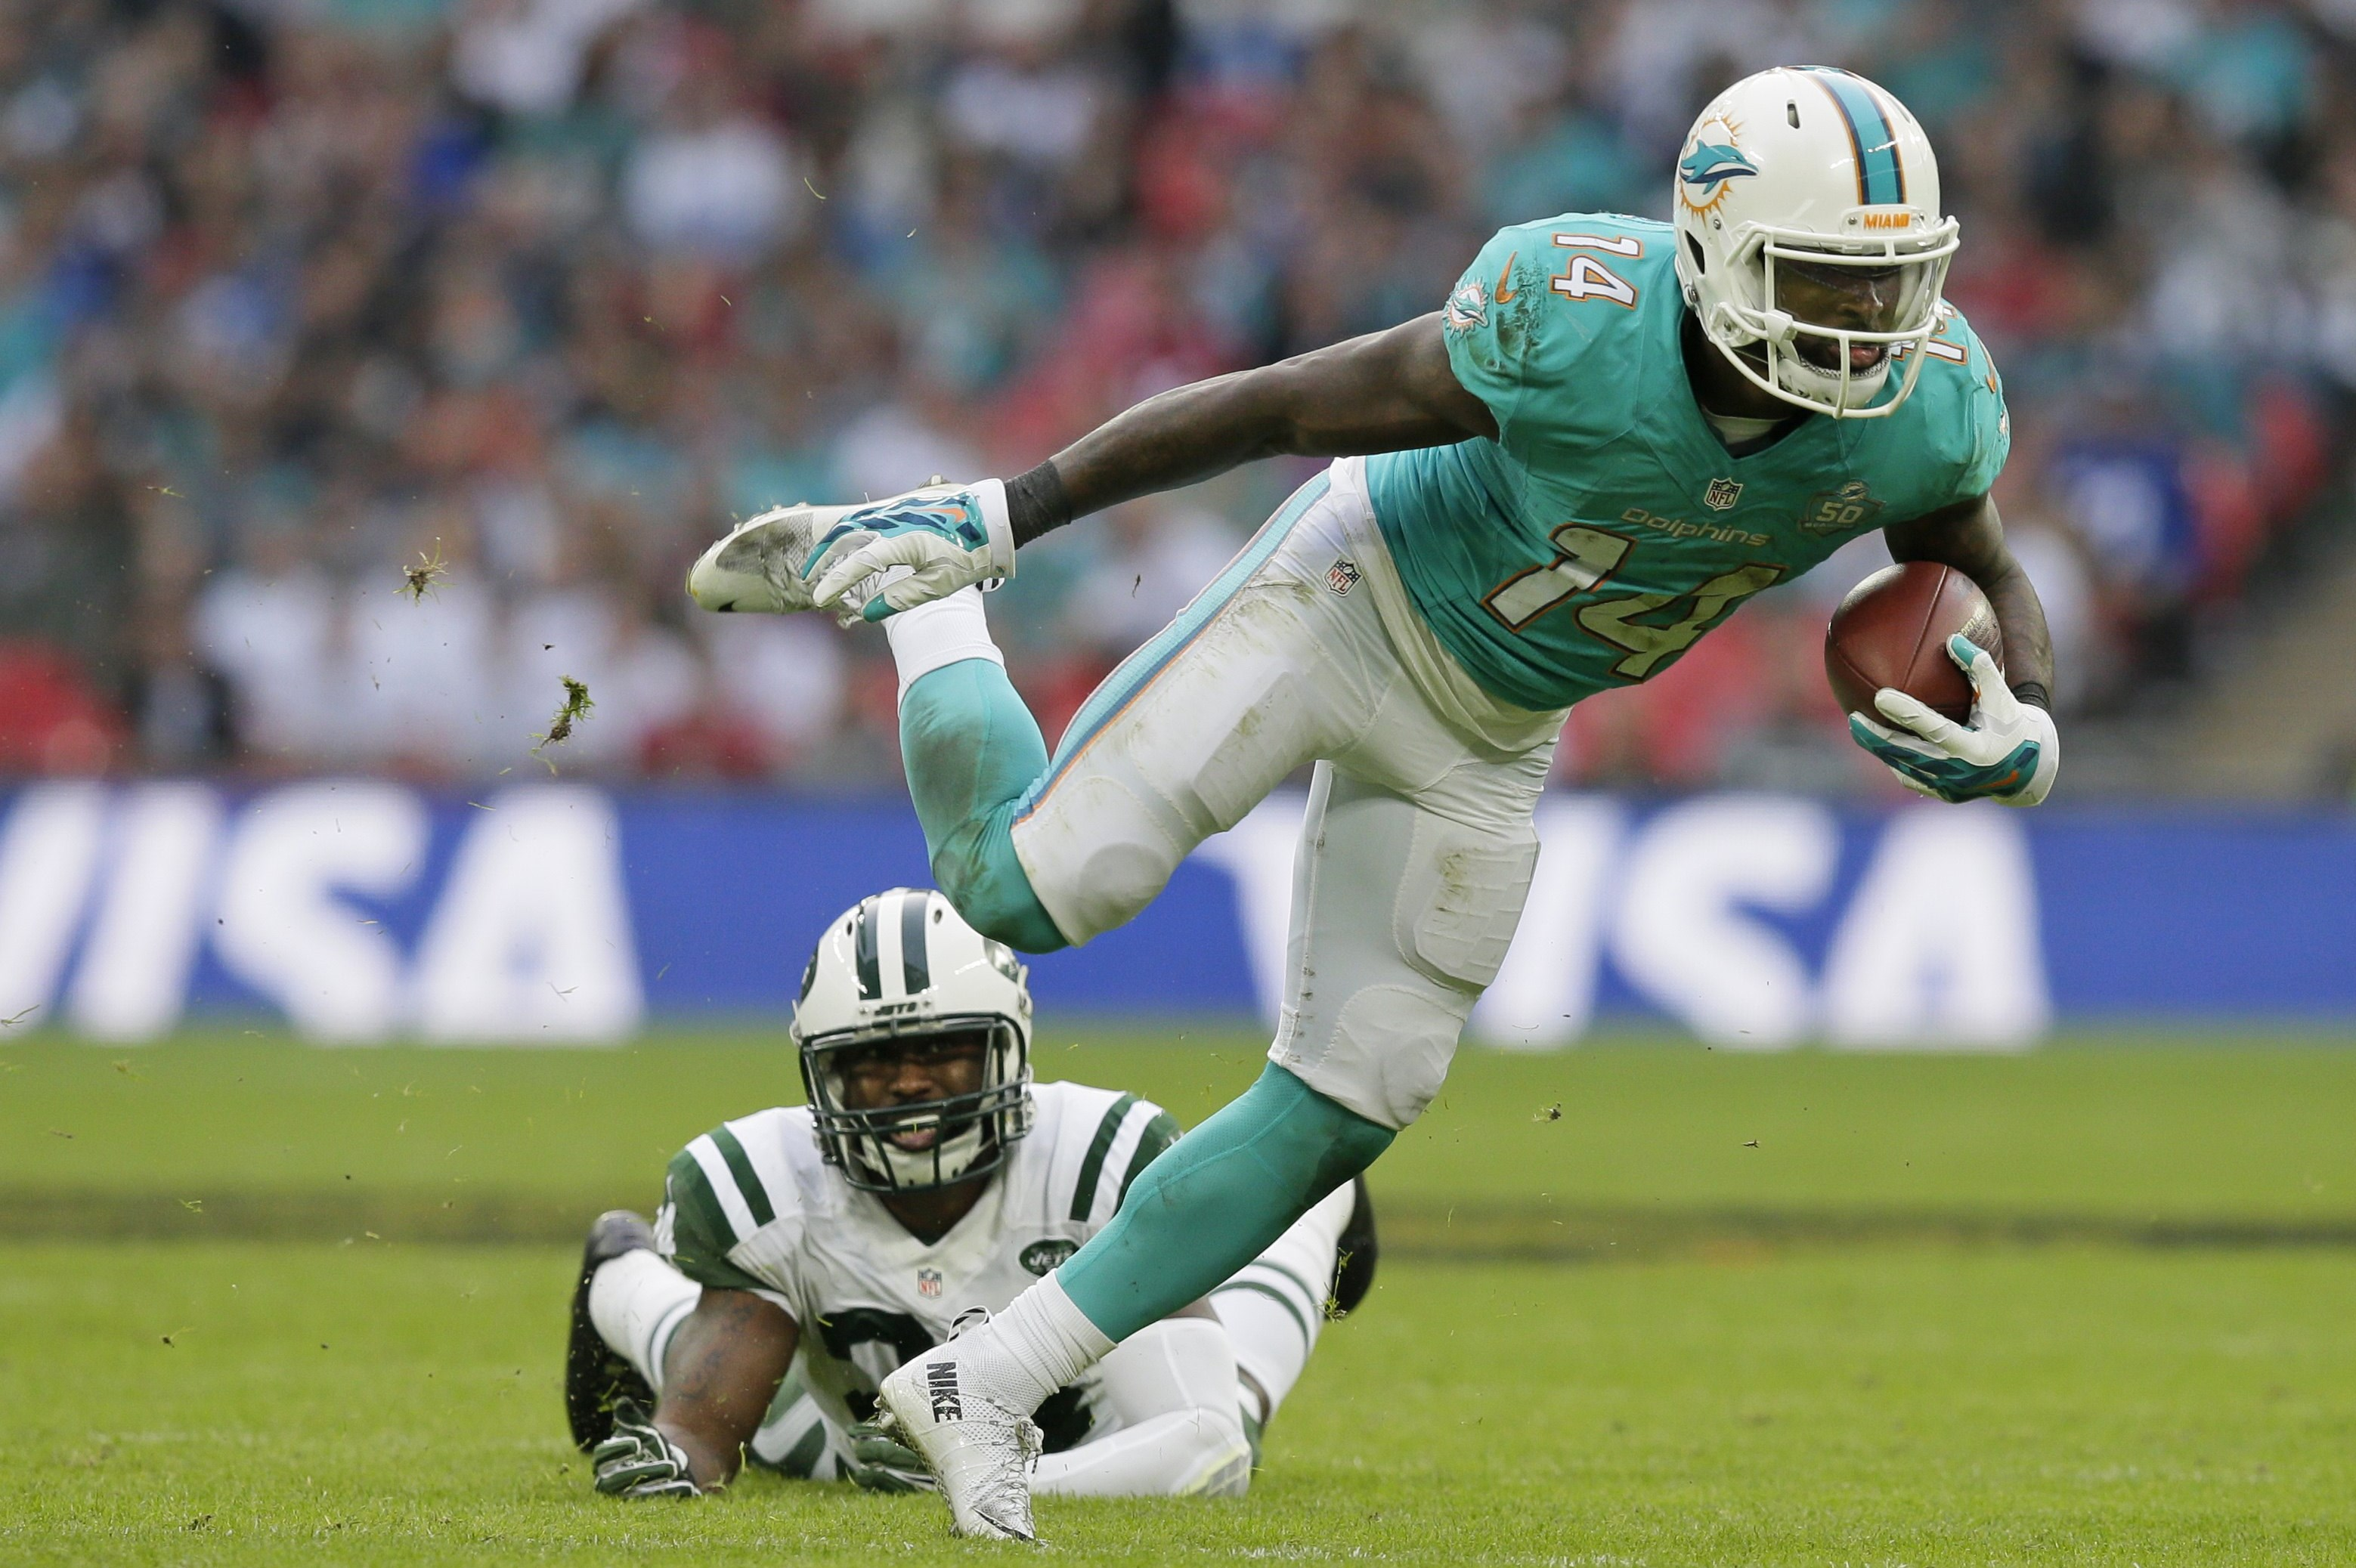 FILE - In this Oct. 4, 2015, file photo, Miami Dolphins' Jarvis Landry breaks the challenge from New York Jets' Darrelle Revis during an NFL football game at Wembley stadium in London. Former LSU teammates Odell Beckham Jr. and Jarvis Landry are two of th